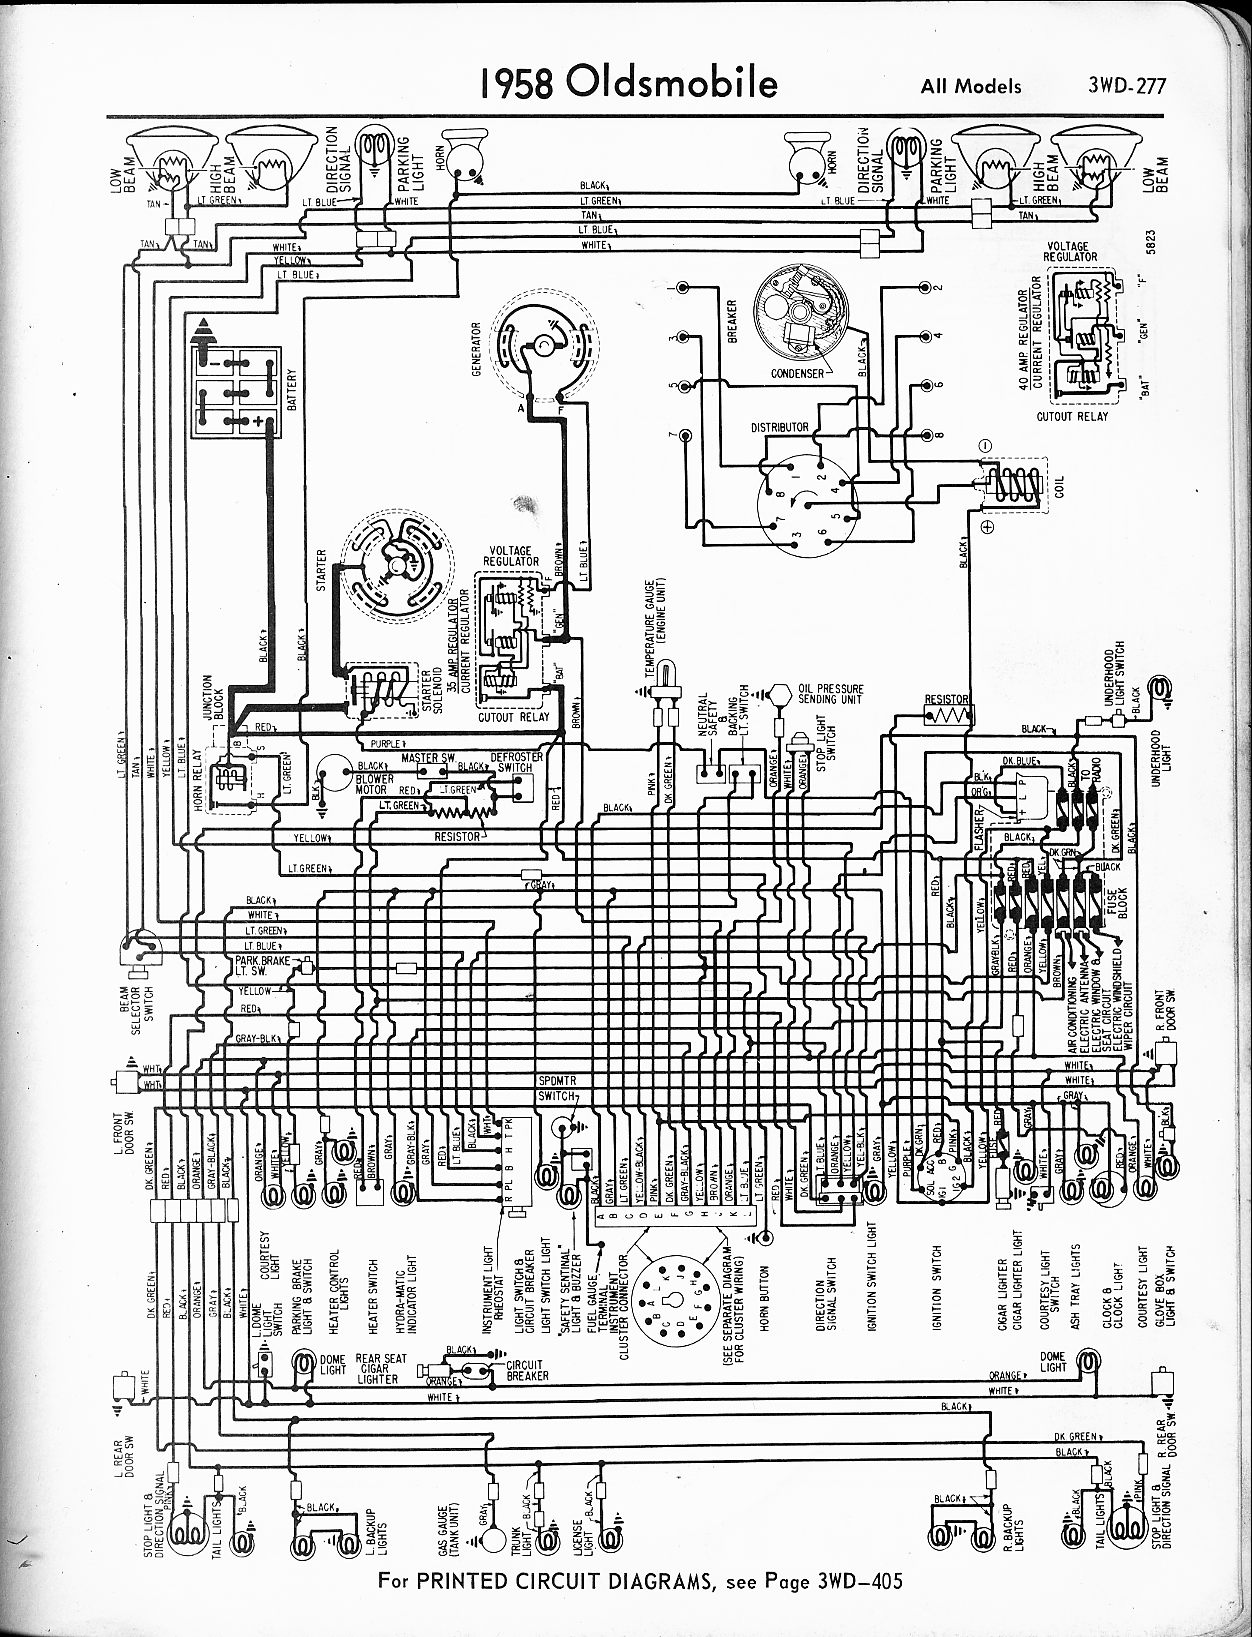 1968 oldsmobile 442 wiring diagrams